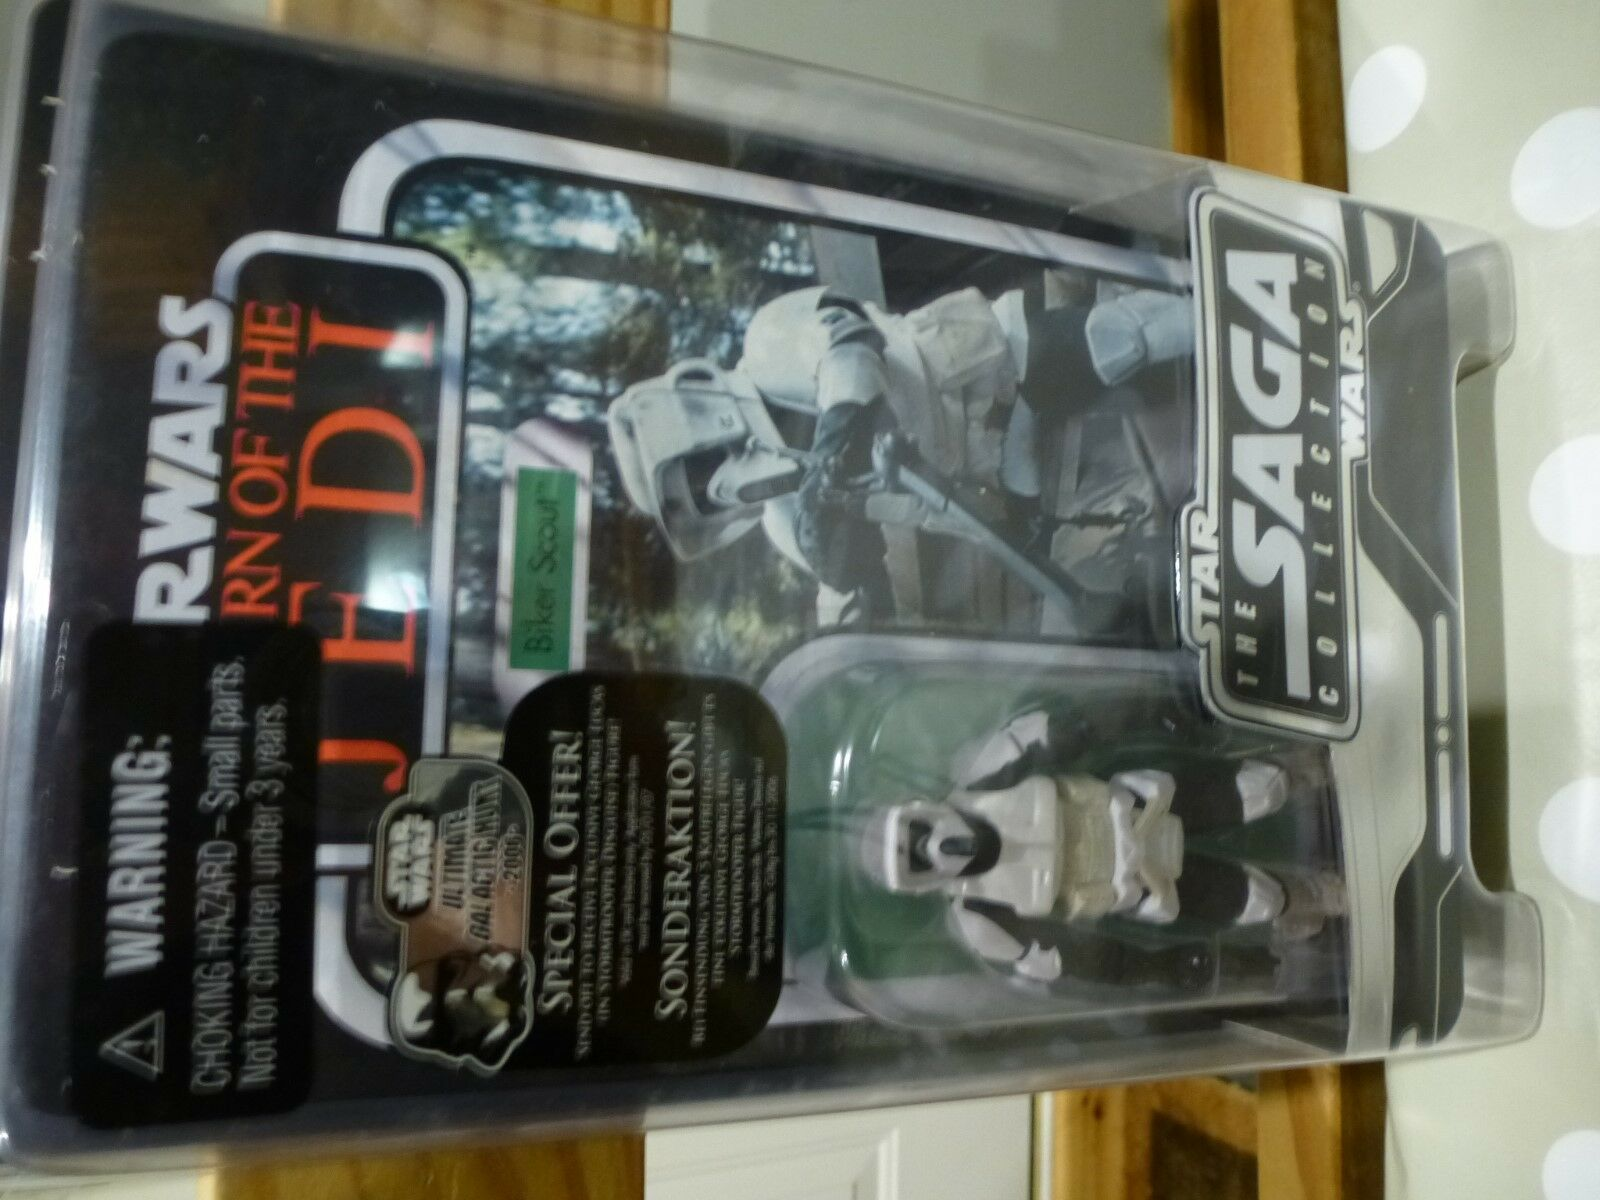 * Nouveau * STAR WARS 2007 Sega collection collection collection x5 Sand People Greedo Han Solo Biker Scout 362900